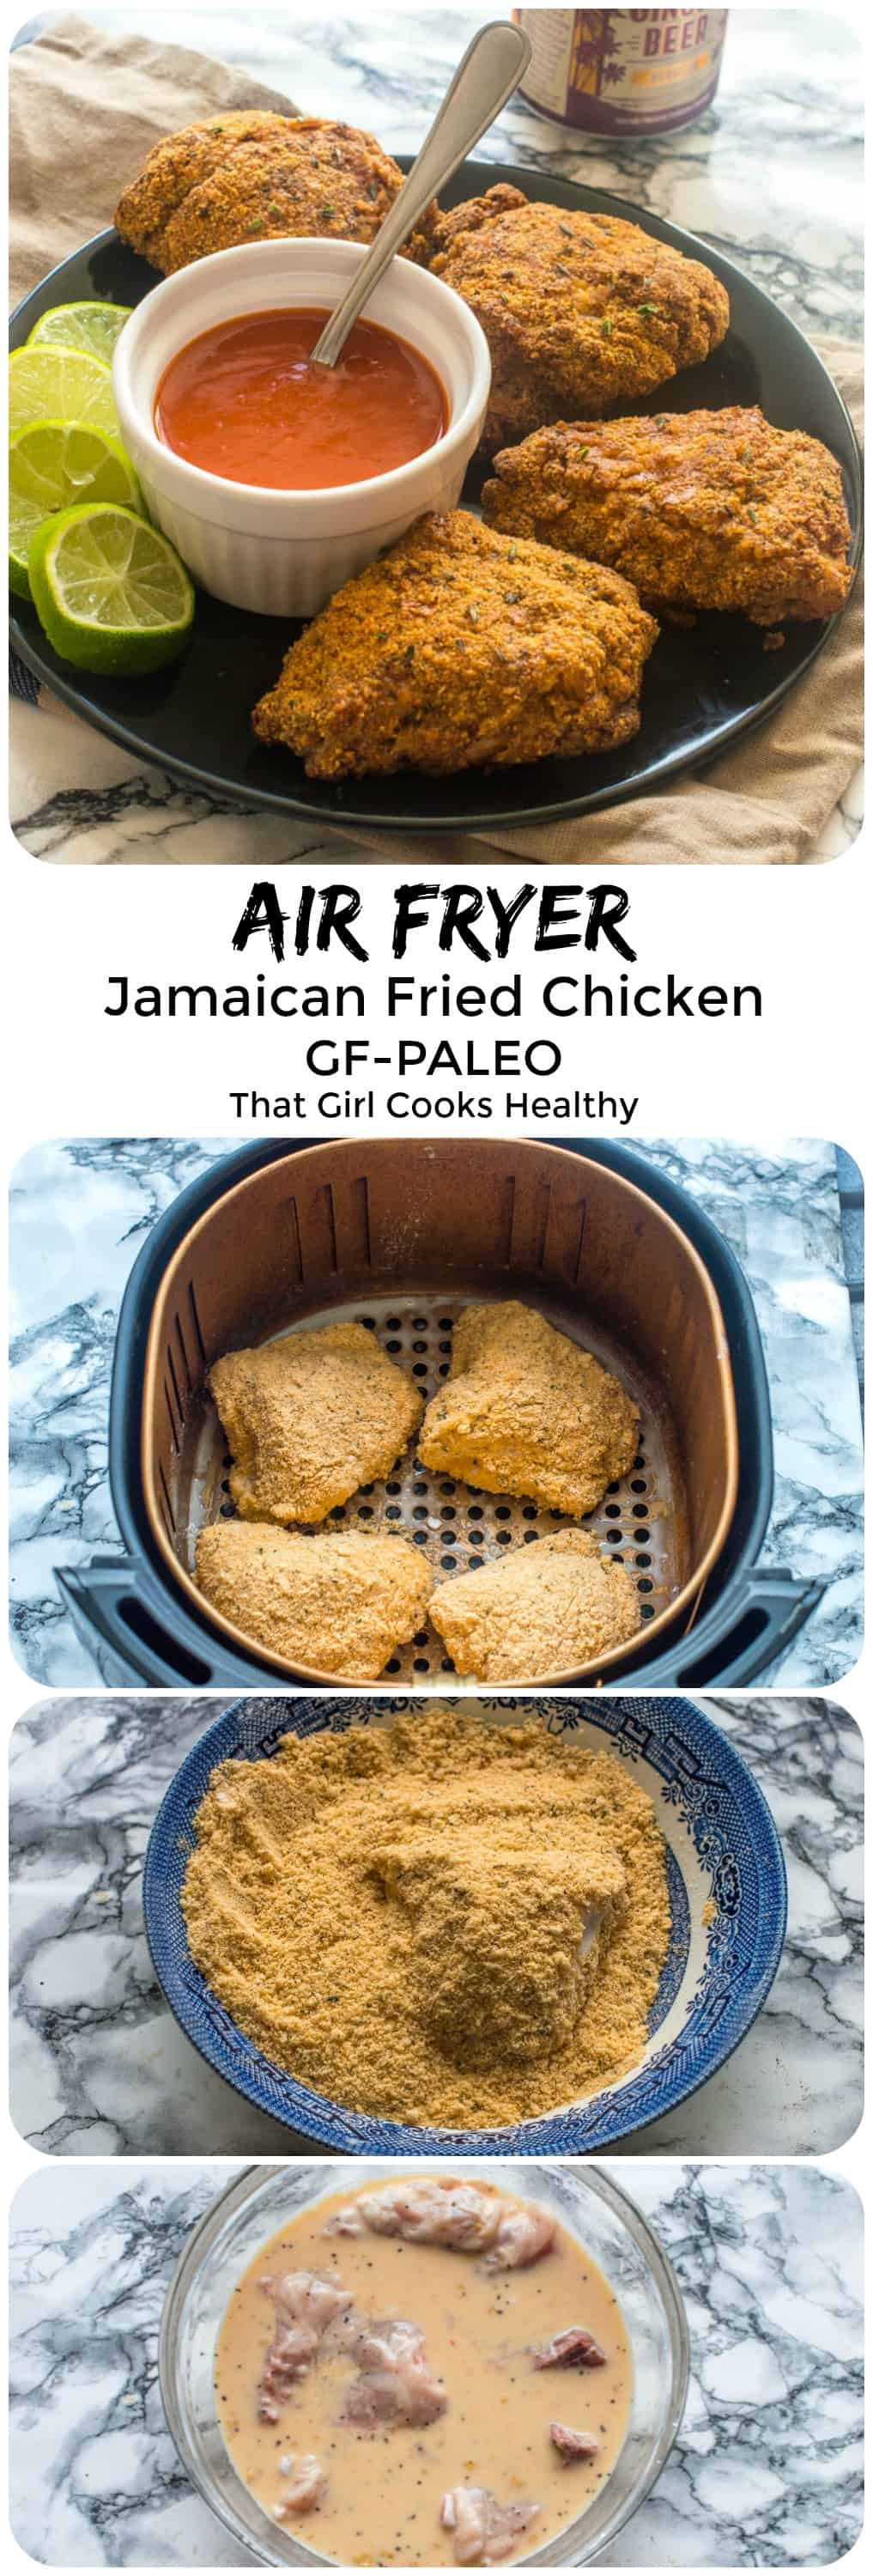 jamaican fried chicken